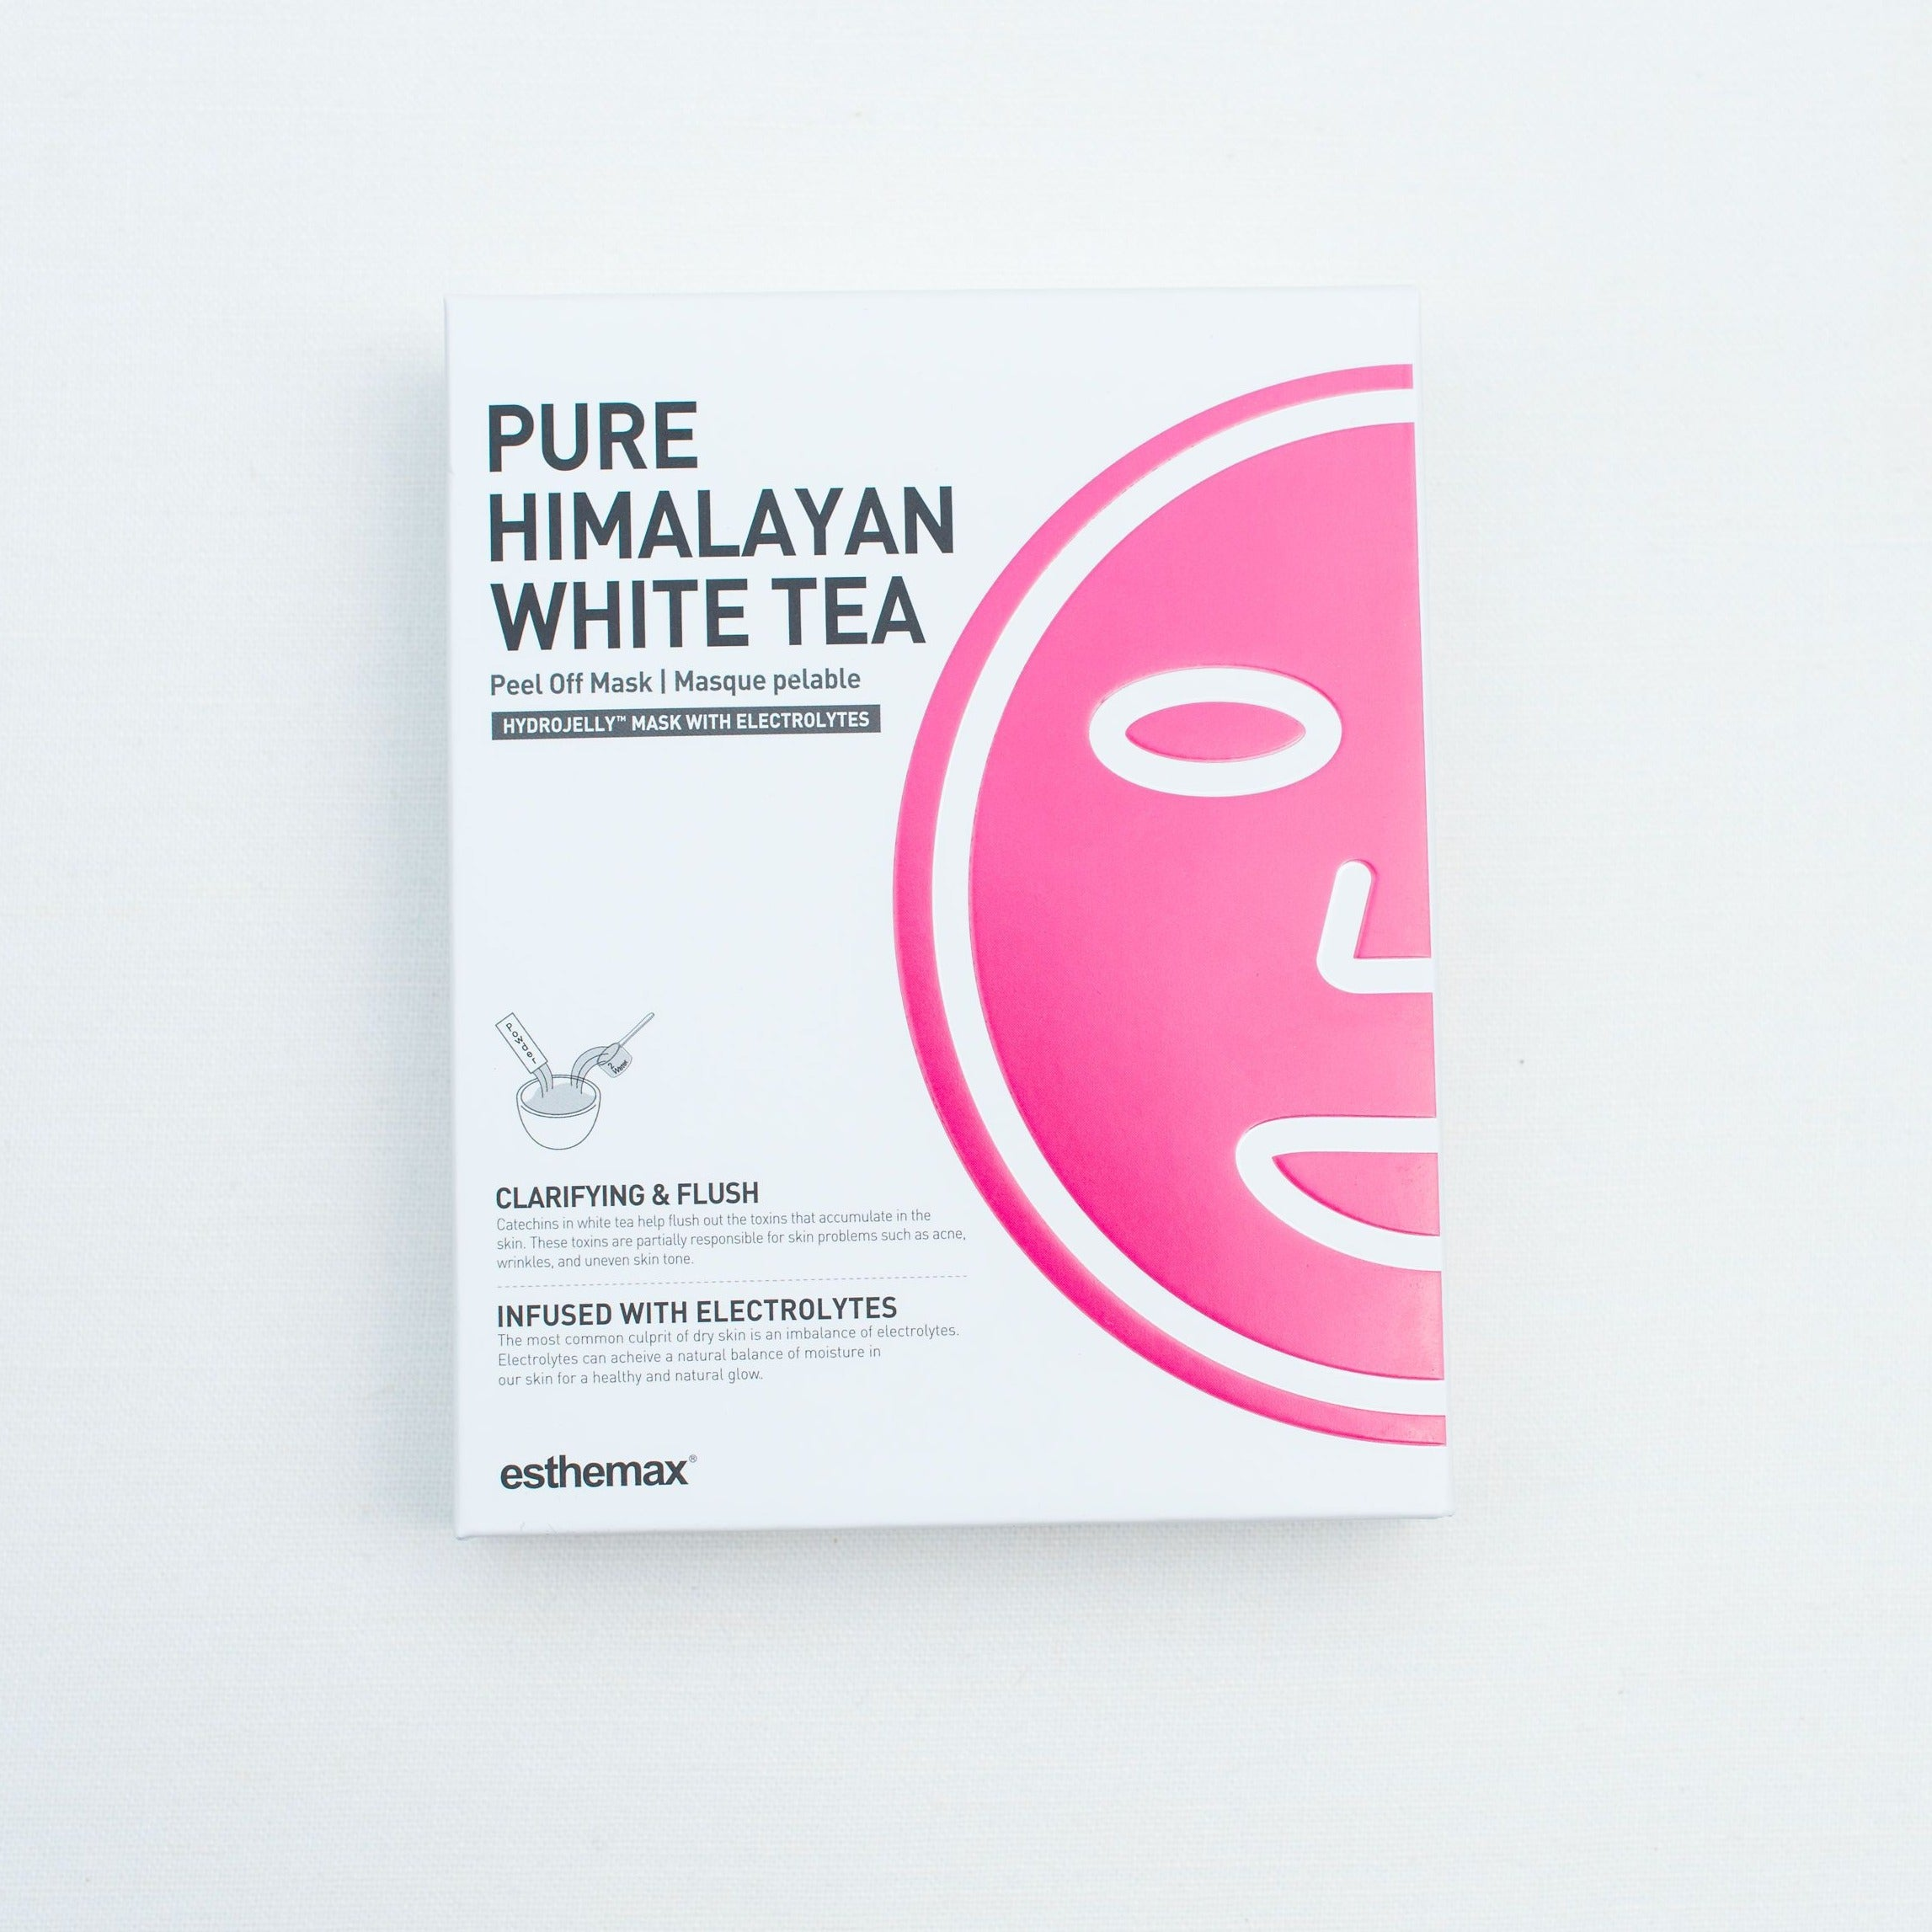 Pure Himalayan White Tea Hydrojelly™ Mask